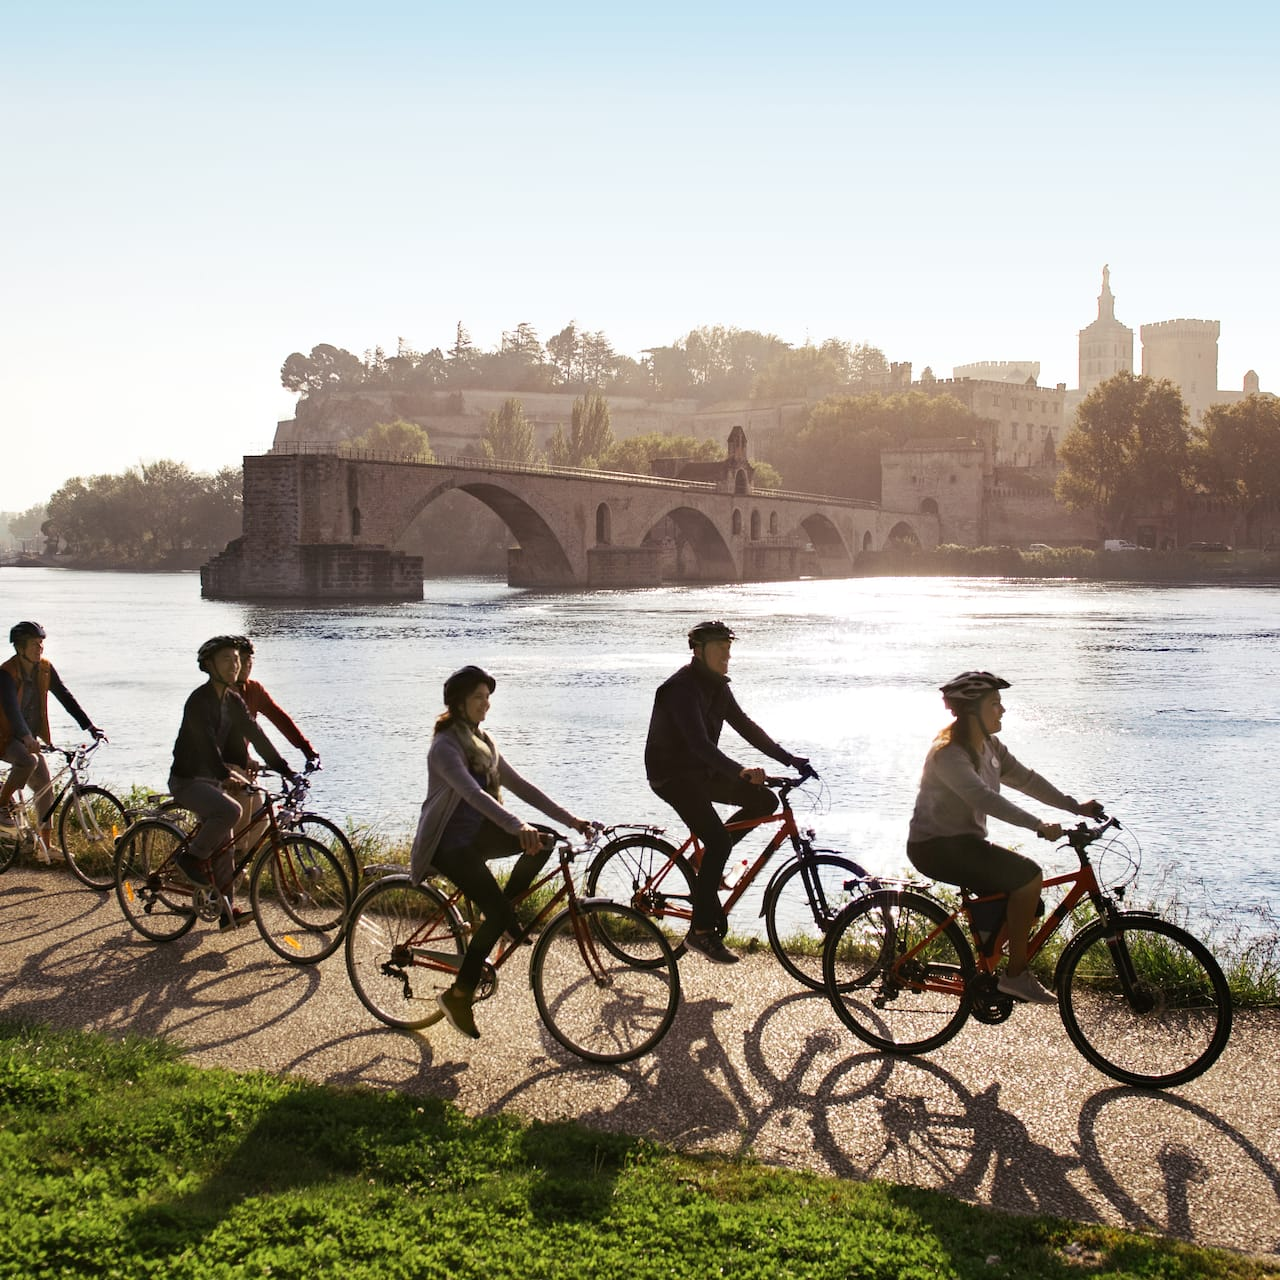 A group of 6 Adventurers follow an Adventure Guide on a bike ride down a bike path along the Rhône River